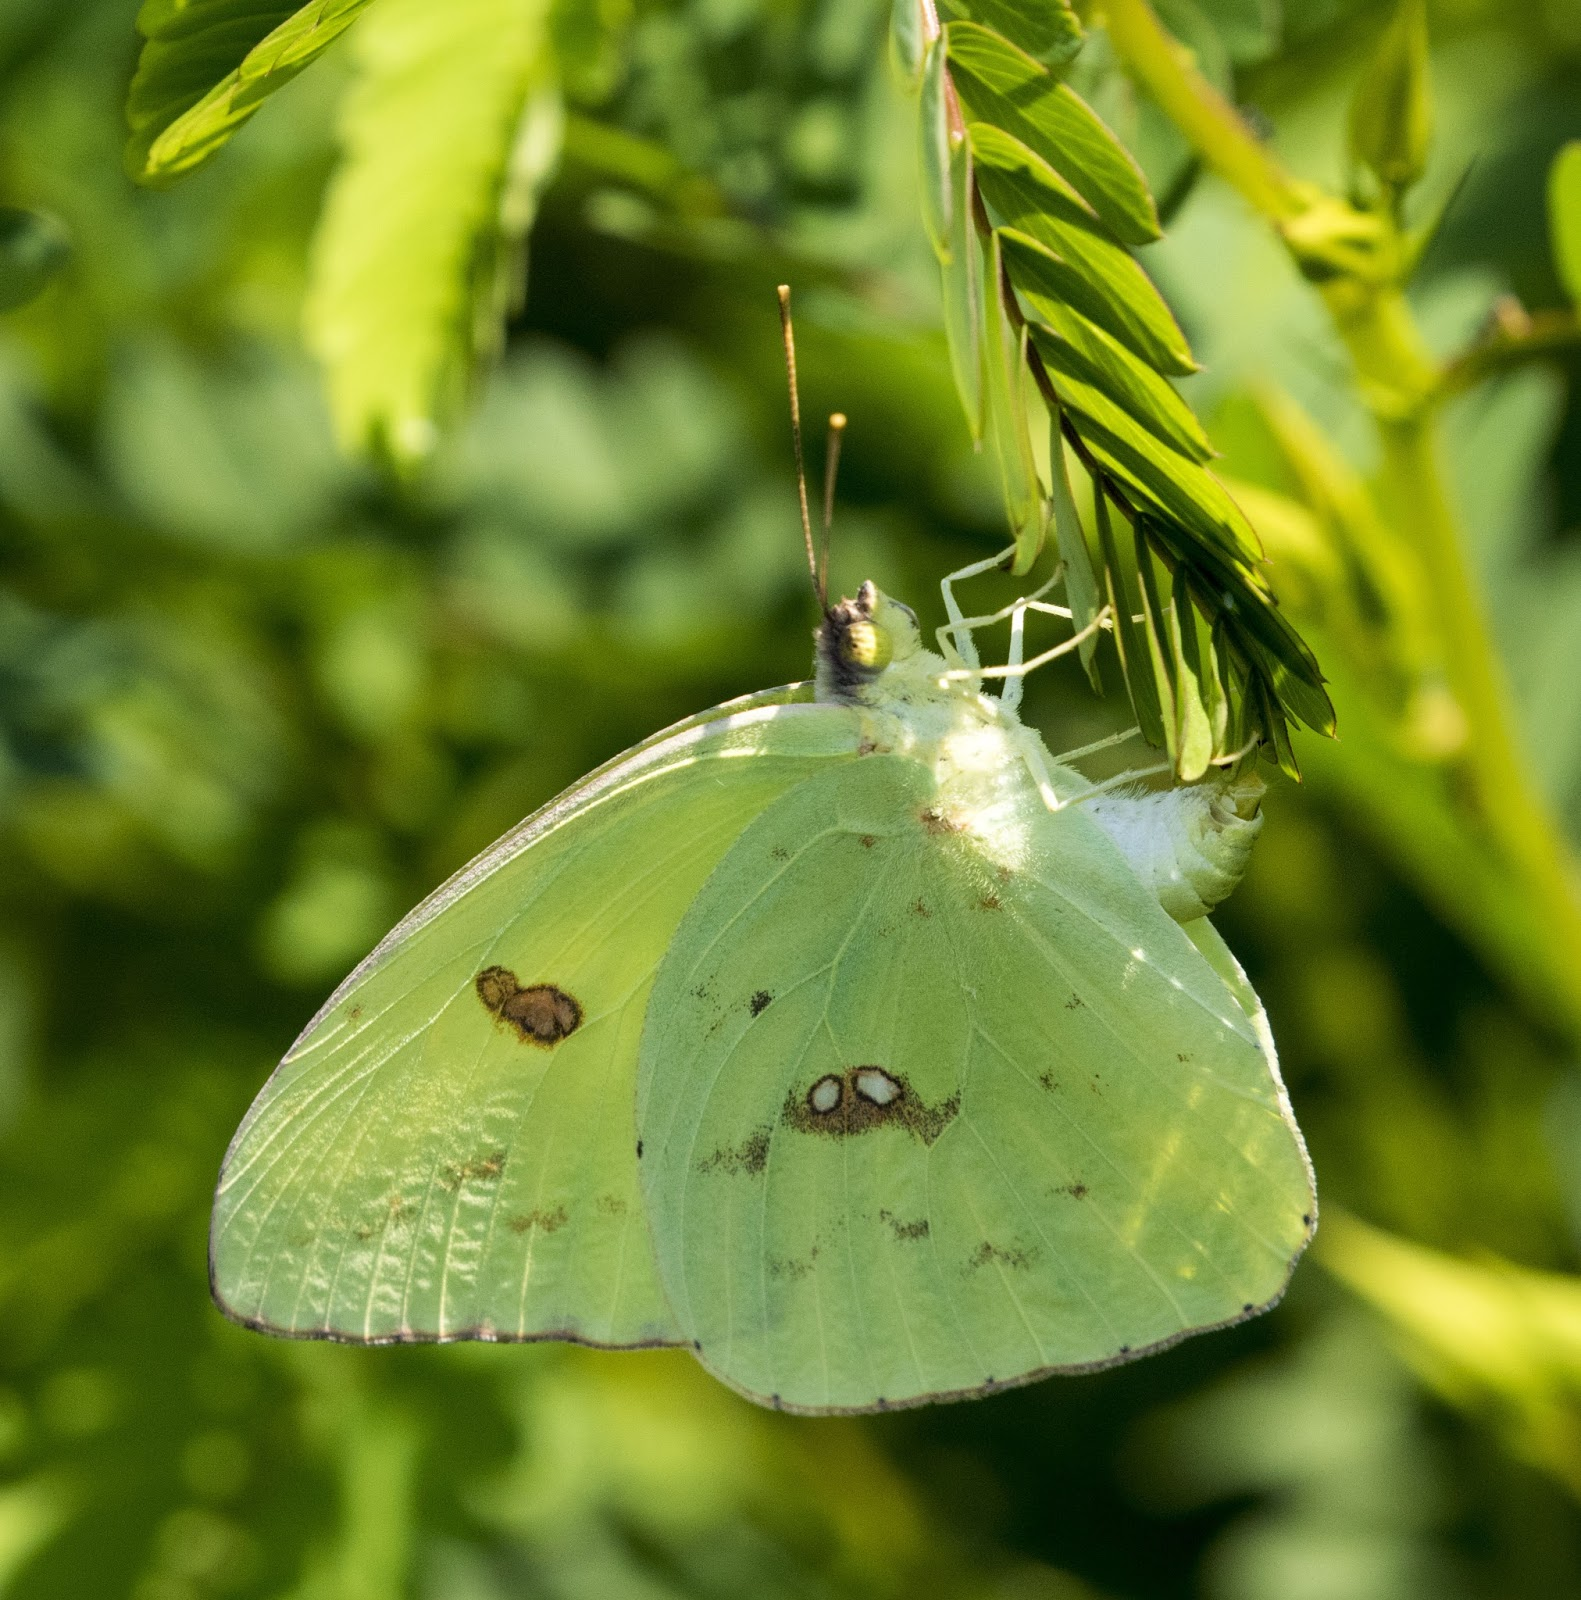 Colias philodice - Wikipedia |Clouded Sulphur Butterfly